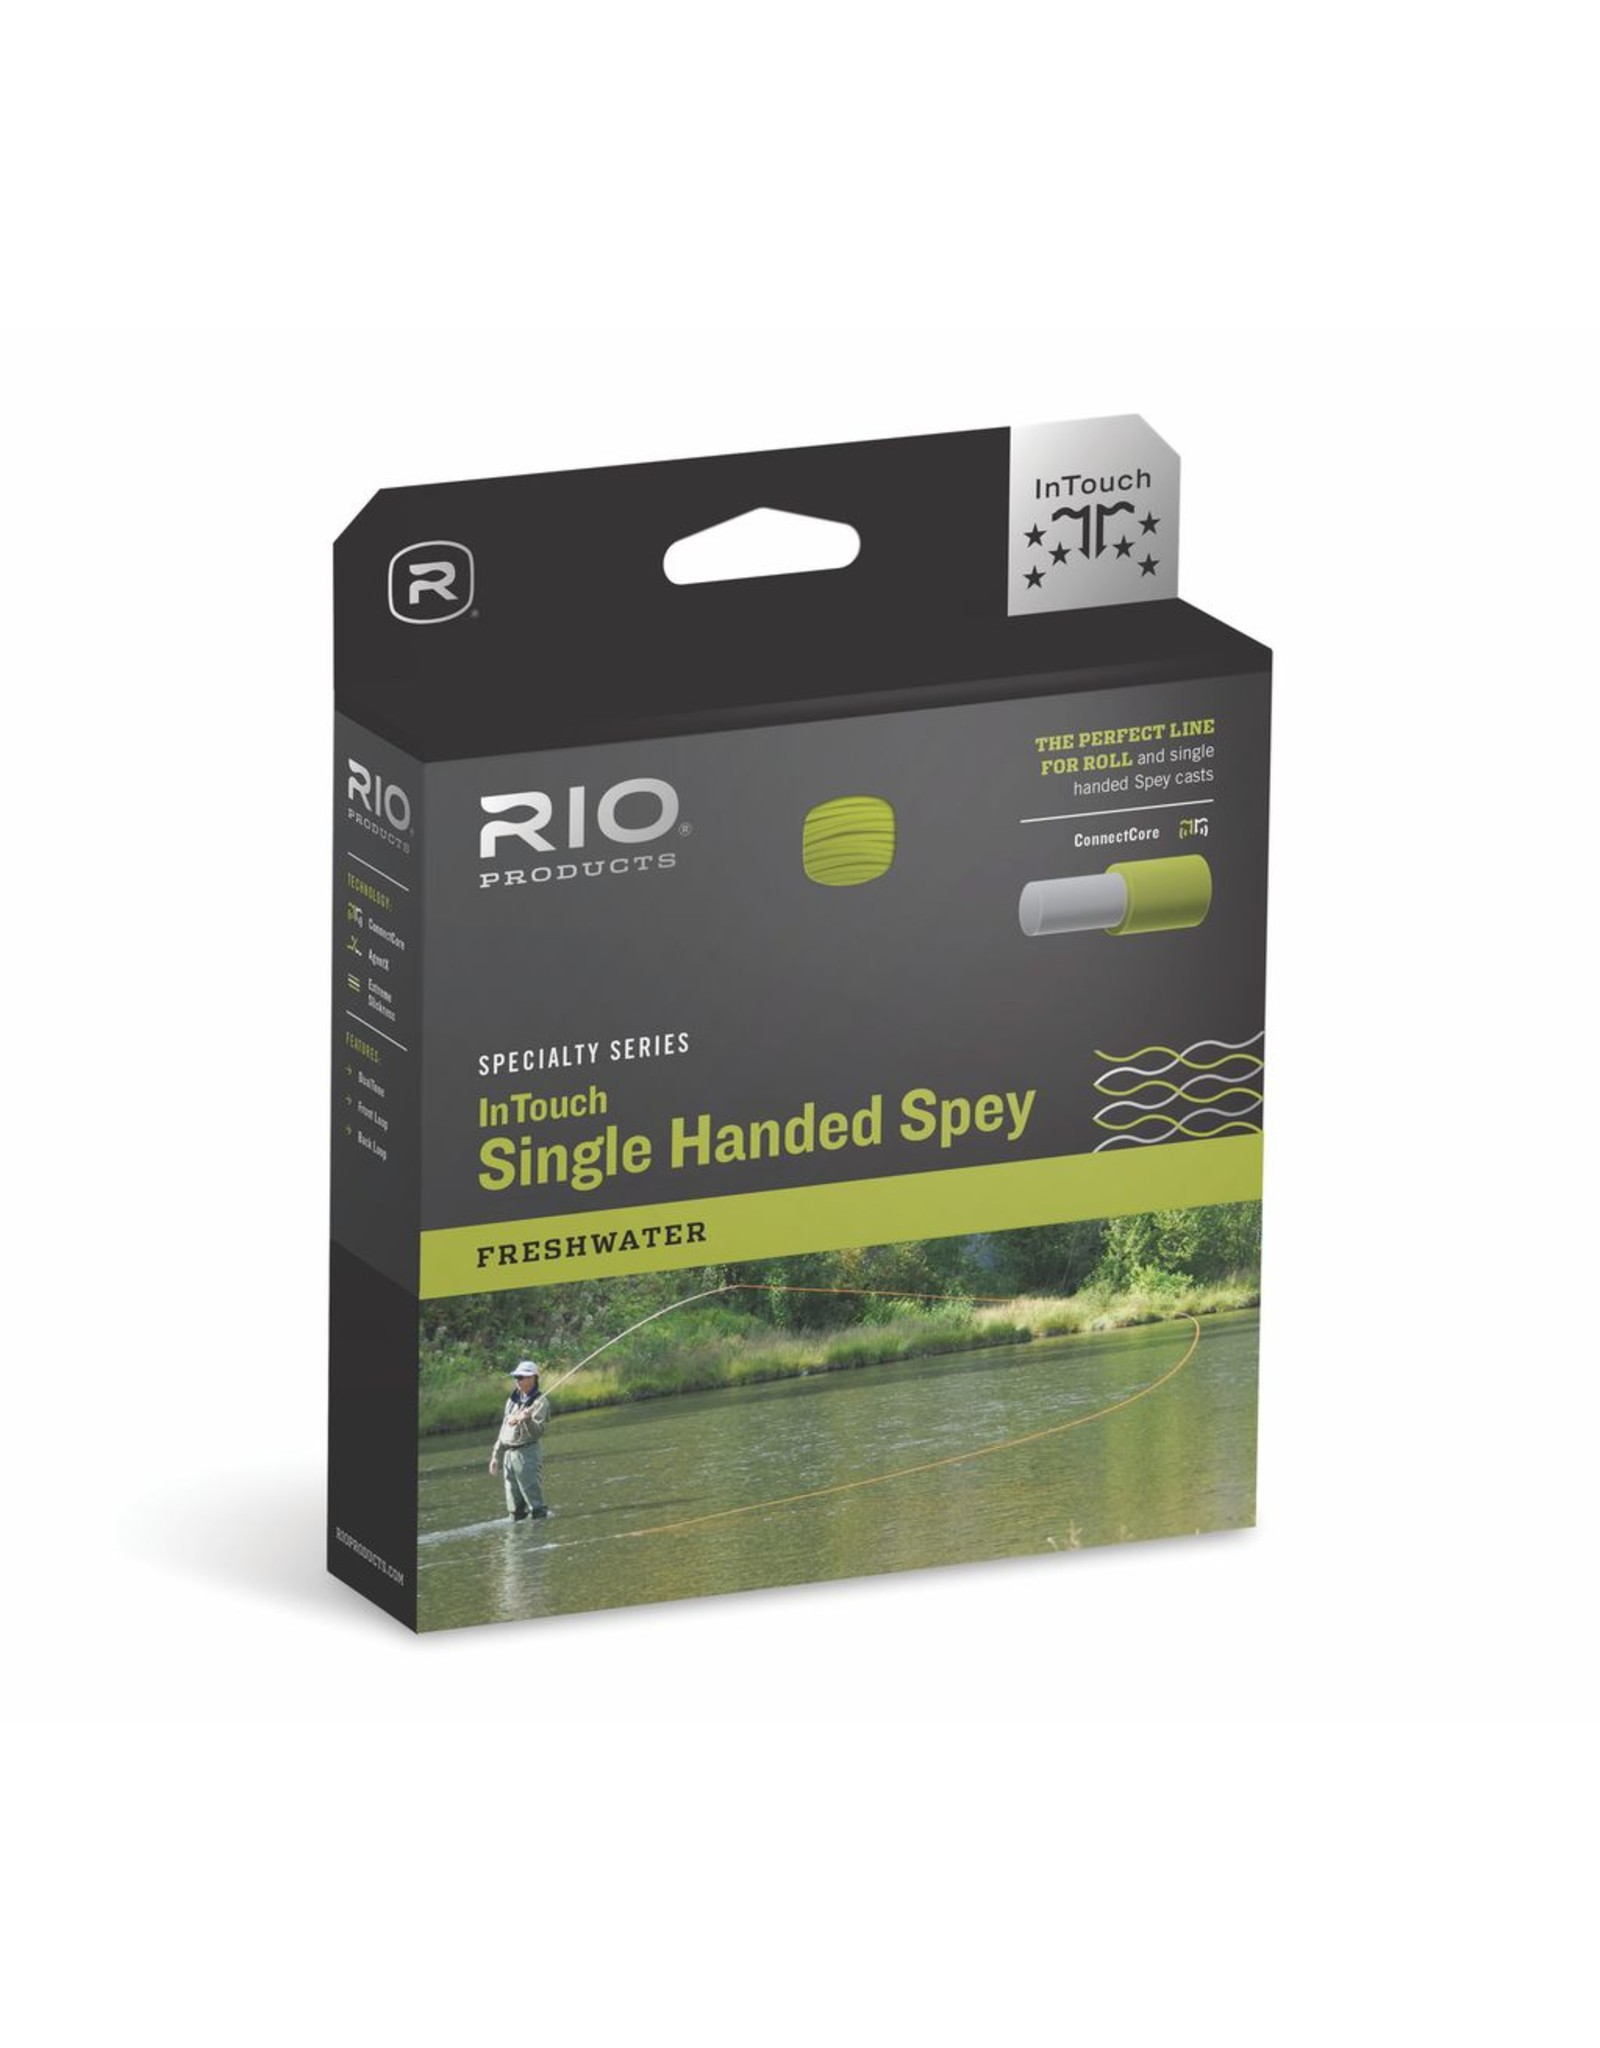 THE PERFECT LINE FOR ROLL, AND SINGLE HANDED SPEY CASTS